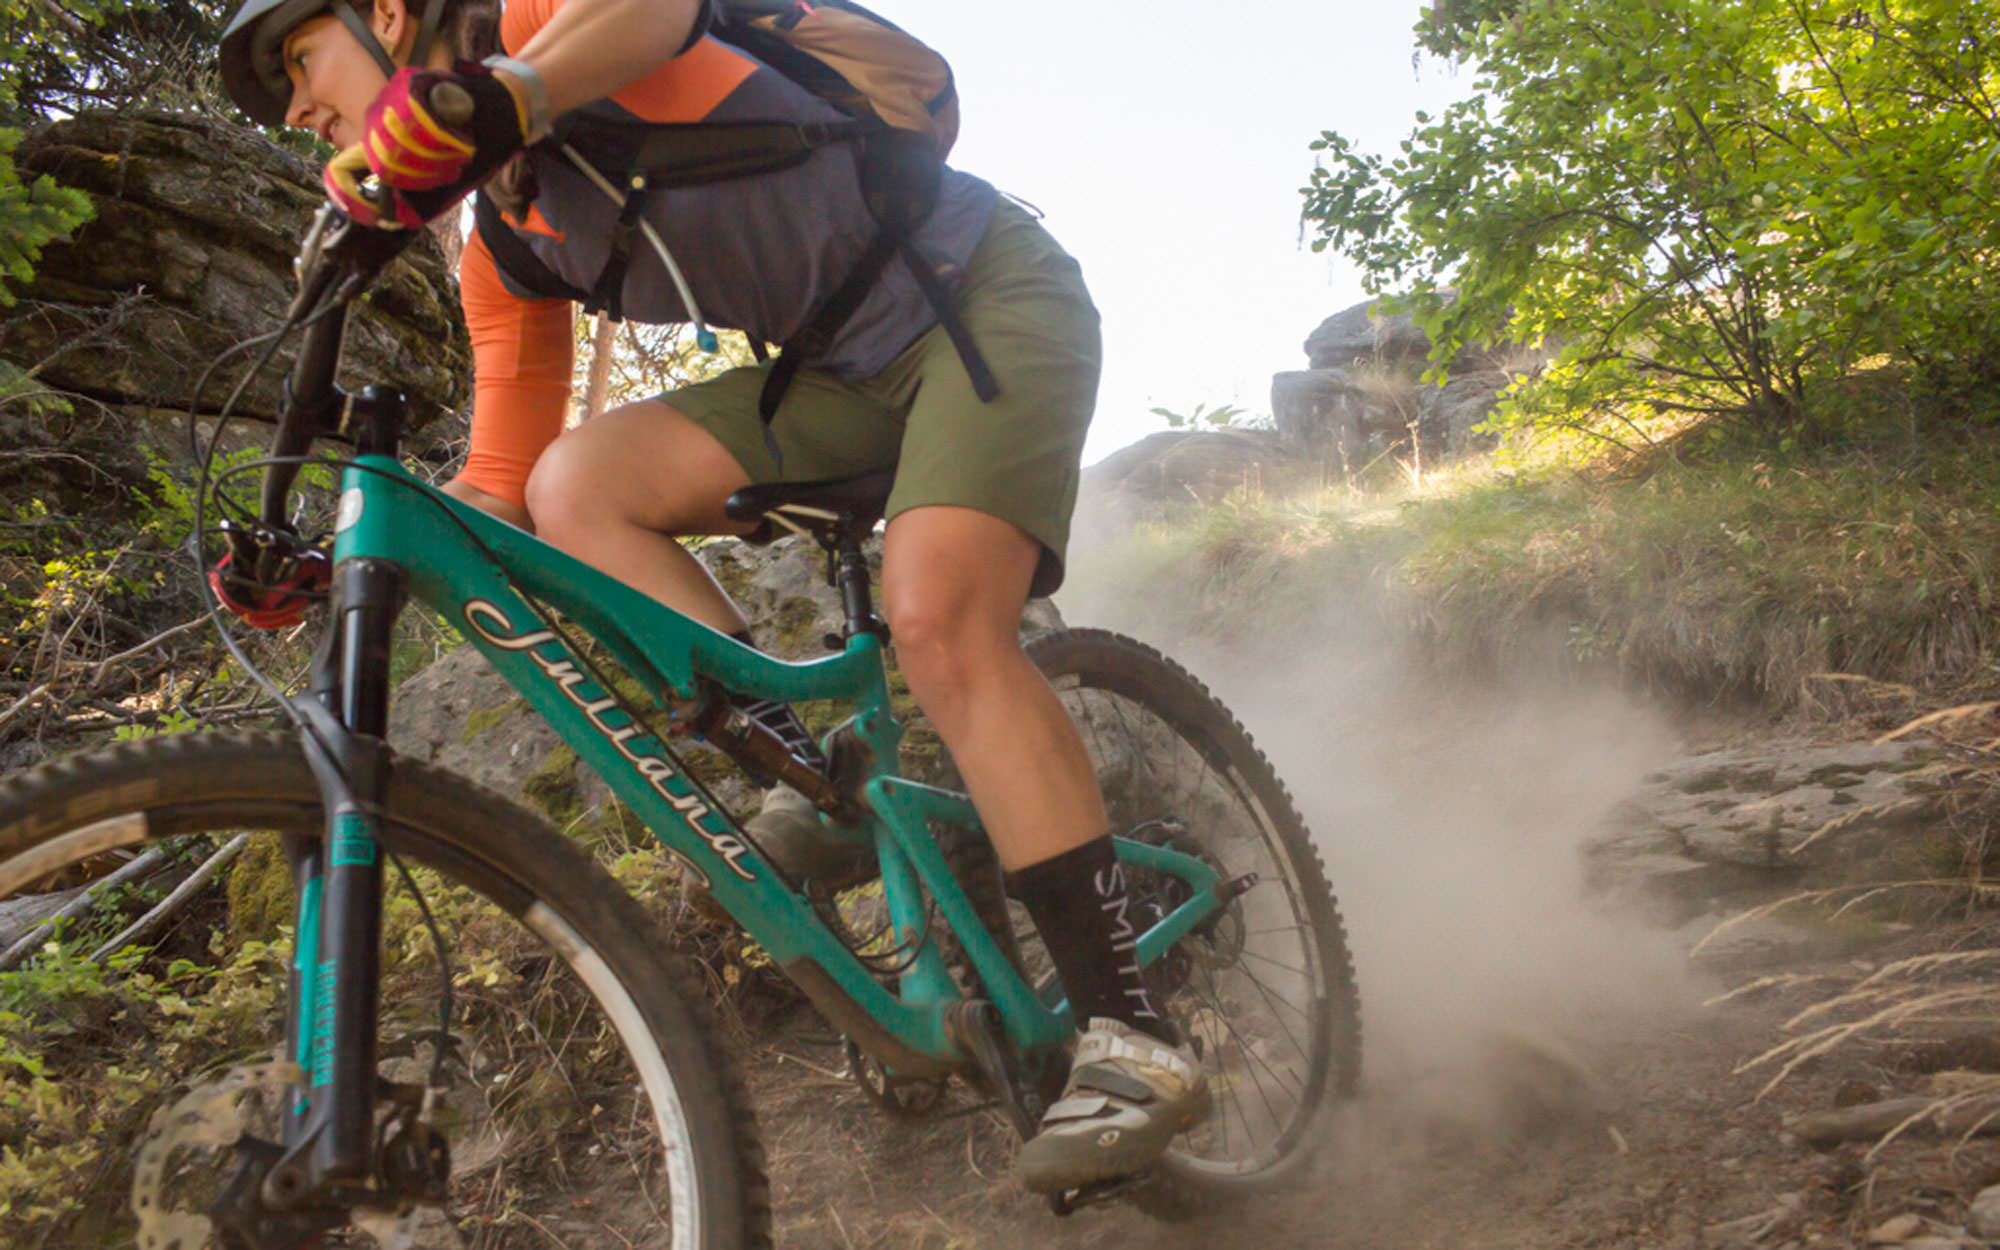 A close-up image of a mountain biker speeding down a dusty singletrack trail.